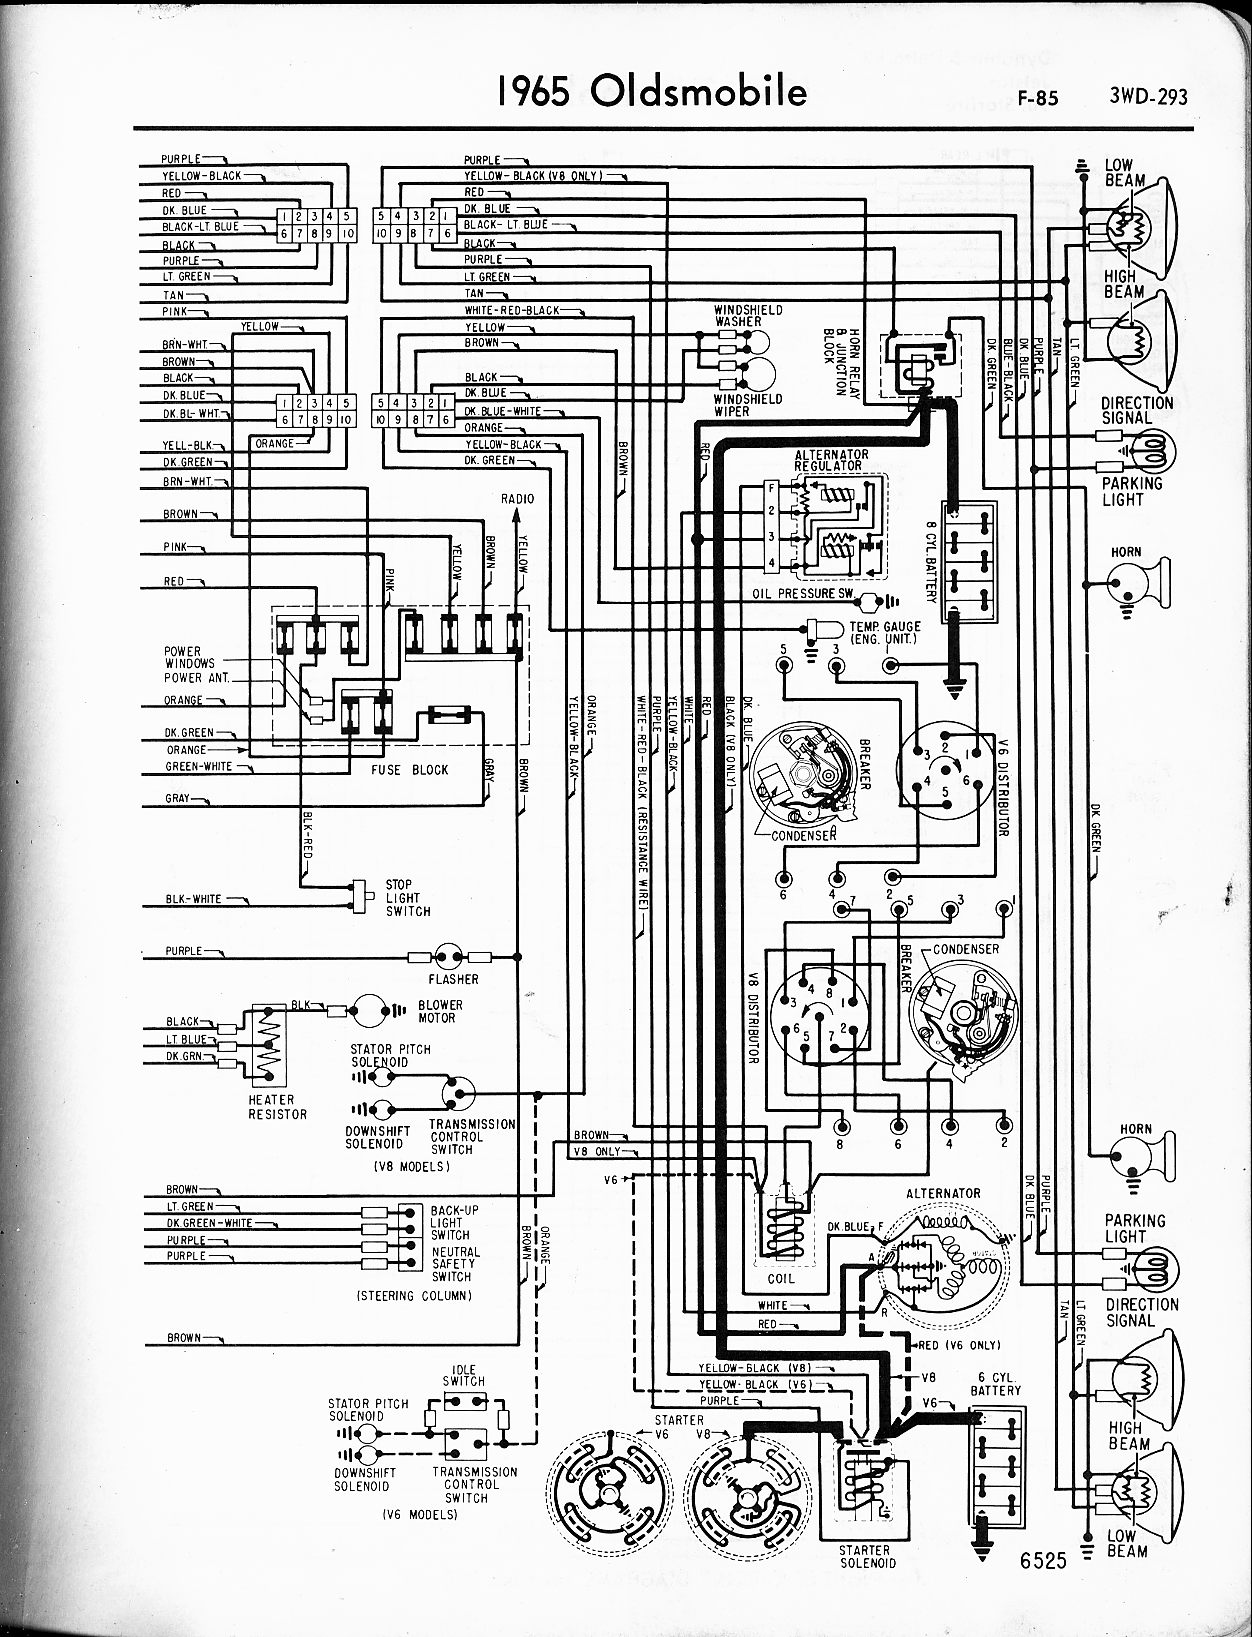 1965 Olds 442 Wiring Diagram Pictures Old Fuse Box Related Keywords Suggestions Oldsmobile Diagrams The Car Manual Project Rh Oldcarmanualproject Com 1964 1970